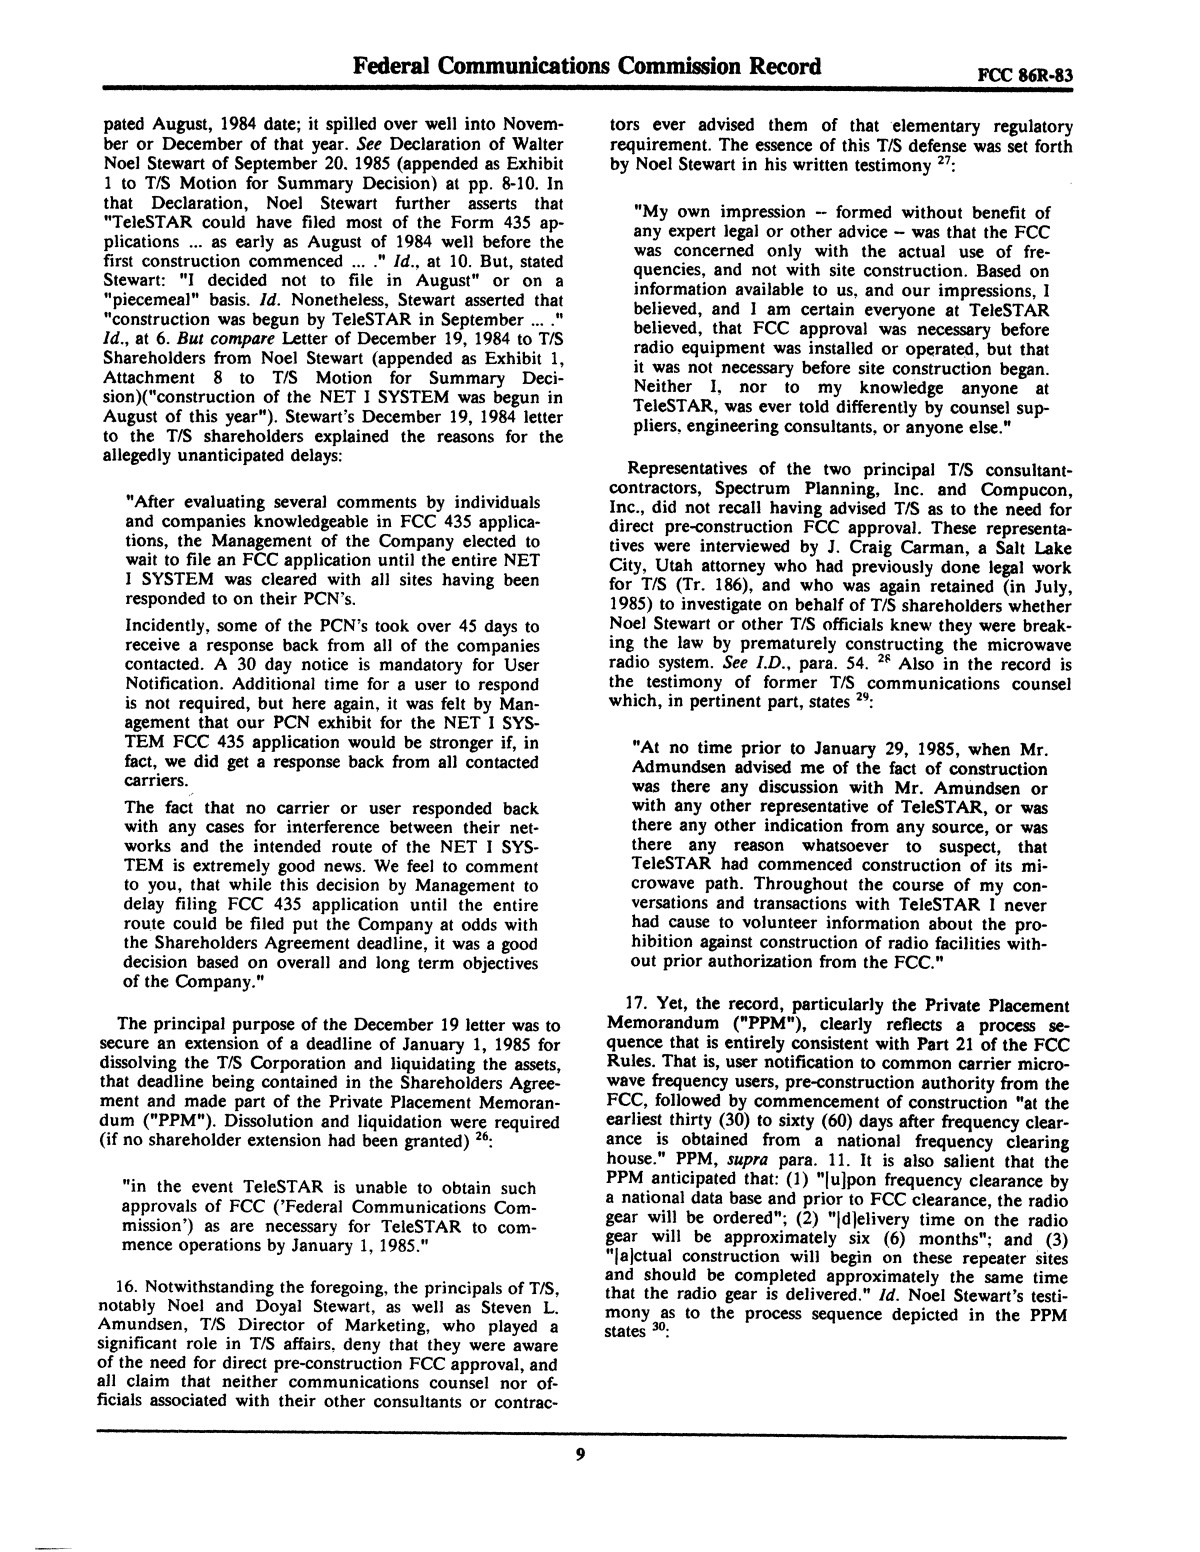 FCC Record, Volume 2, No. 1, Pages 1 to 409, January 5 - January 16, 1987                                                                                                      9